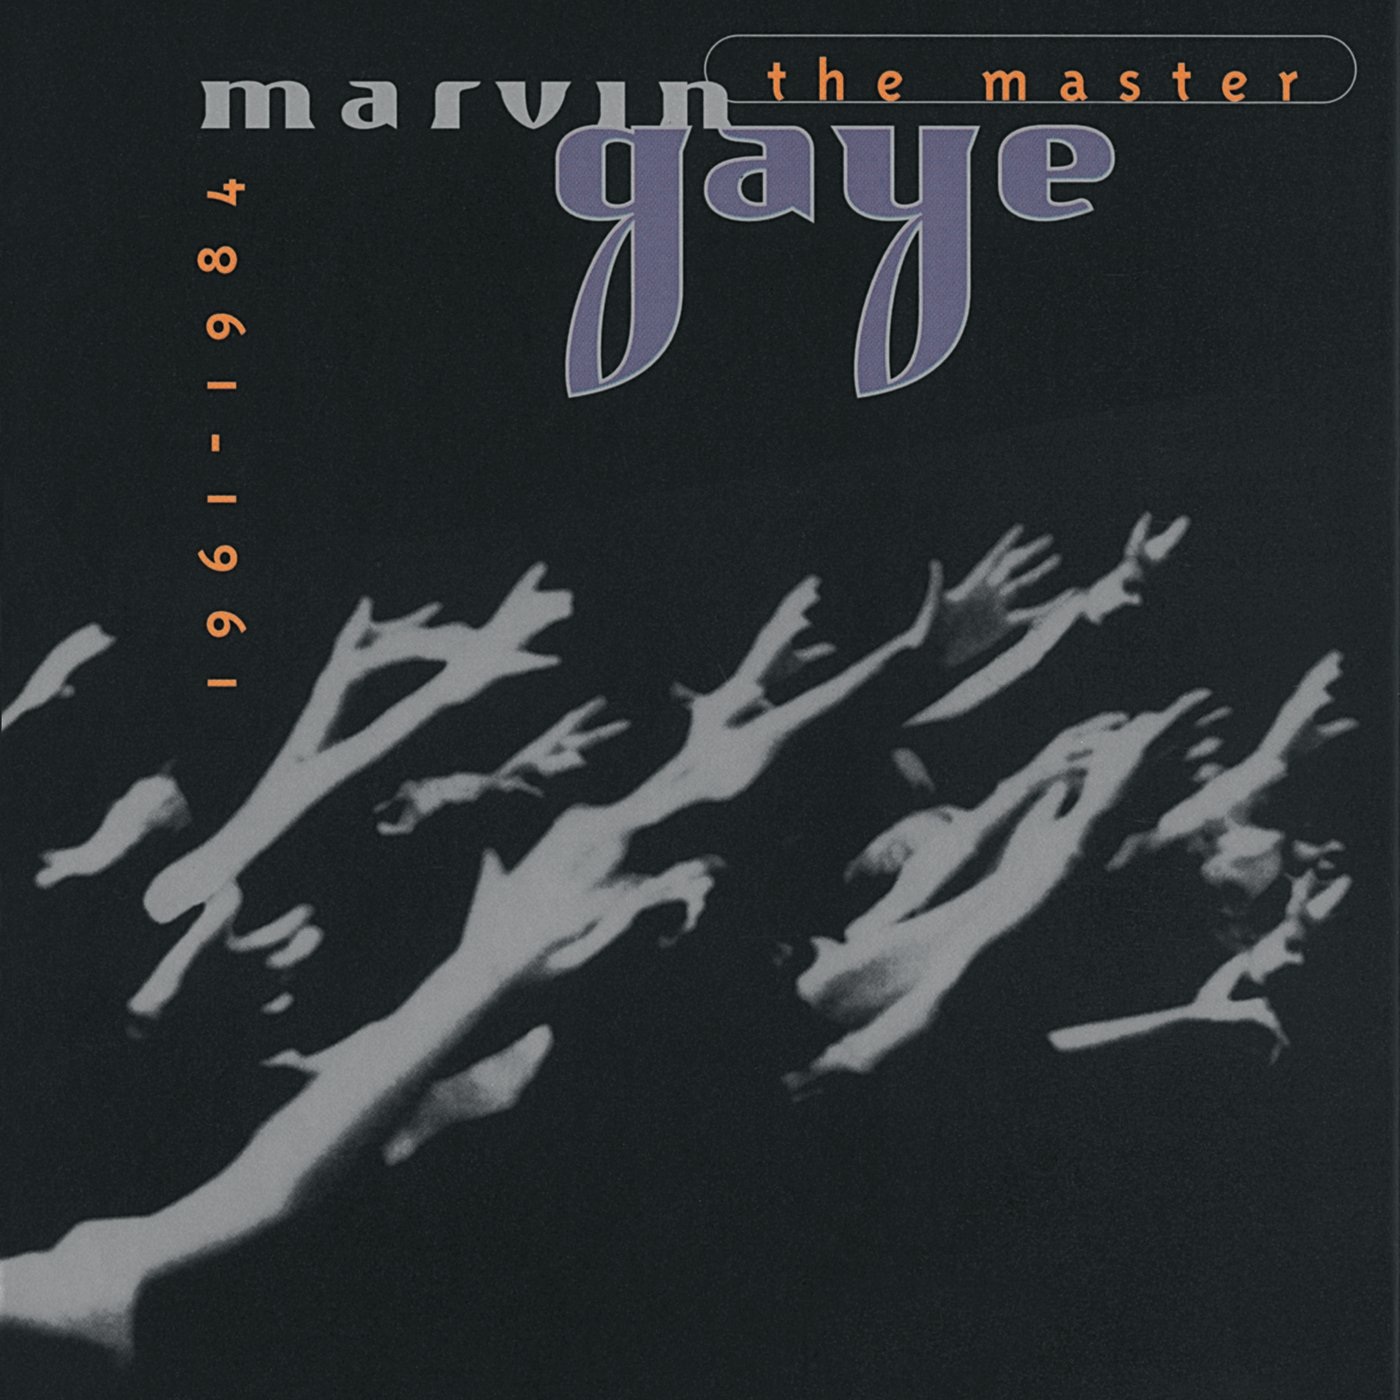 Marvin Gaye: The Master (1961-1984) by Motown Records